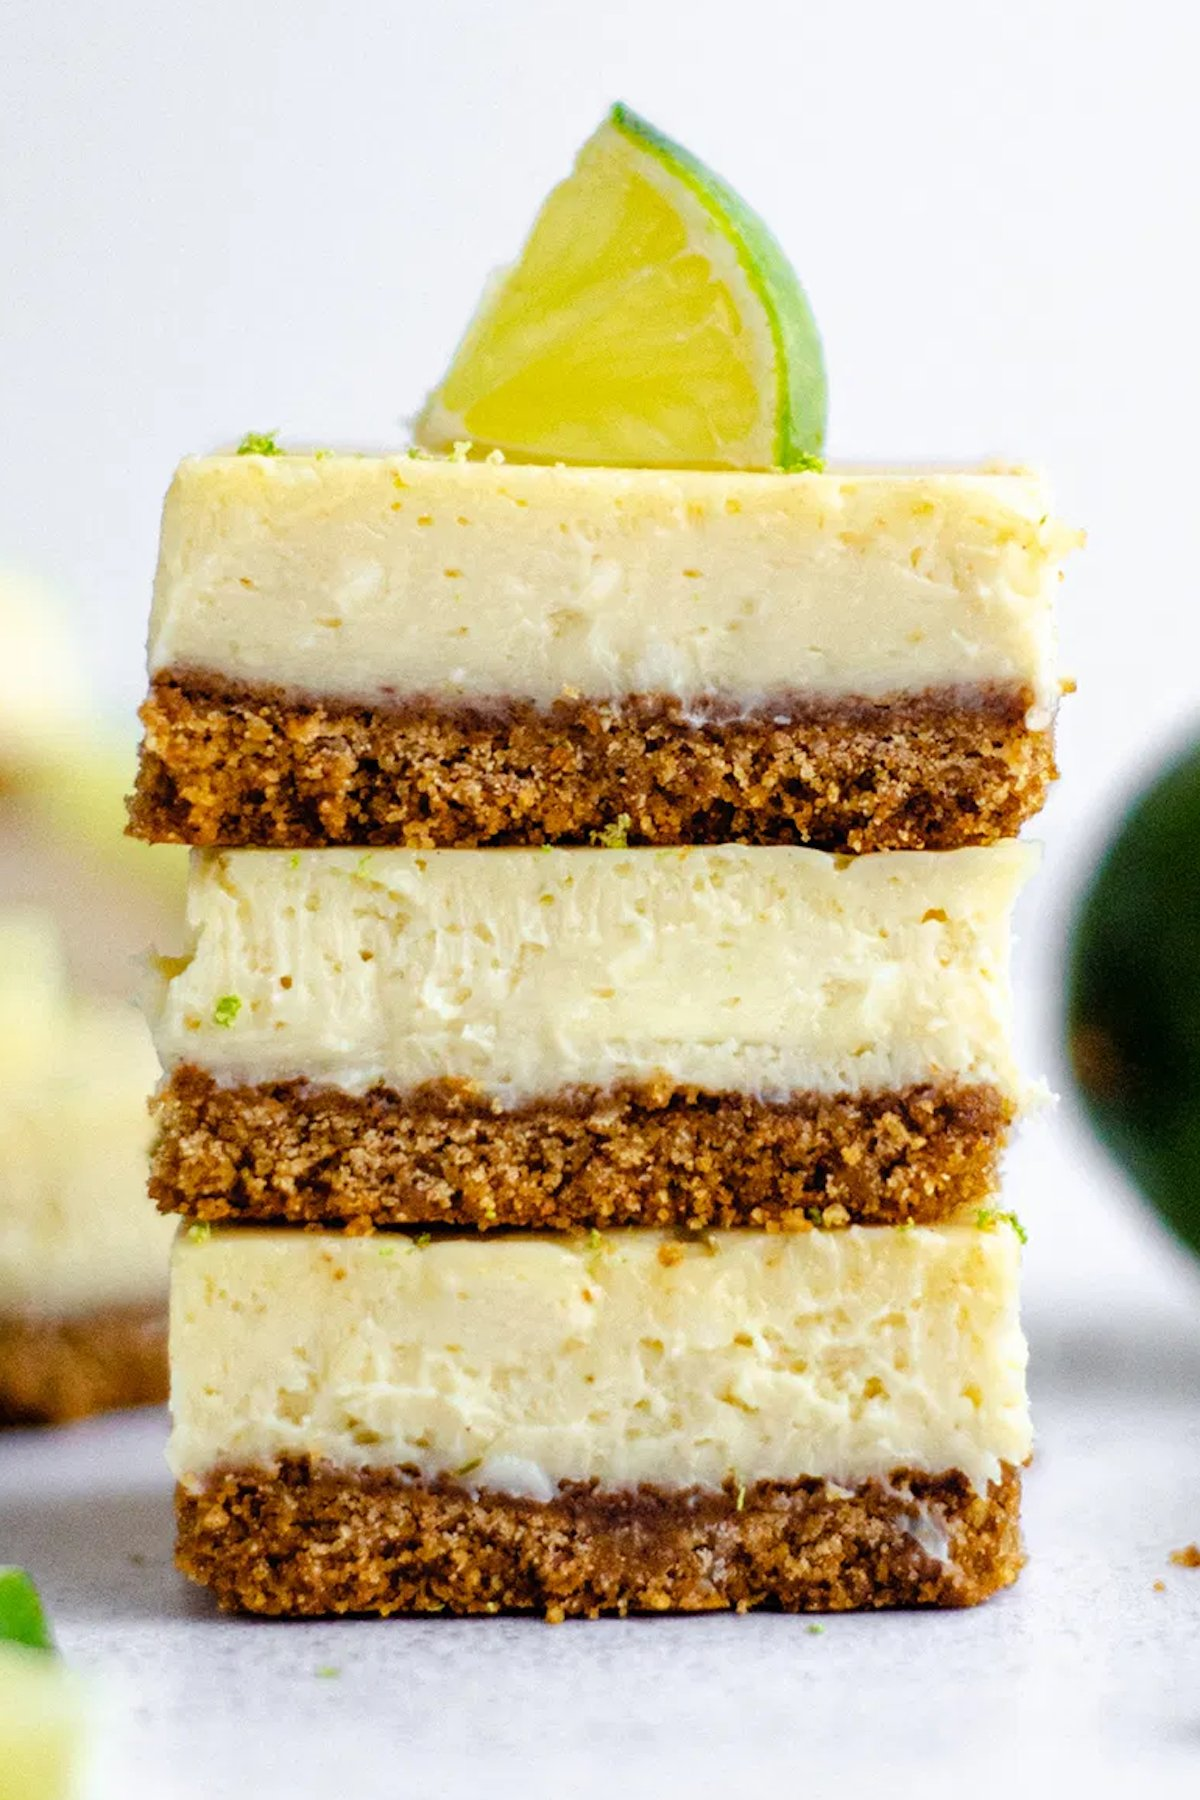 Three key lime pie bars stacked on top of one another on a light background. The top bar is garnished with a lime slice.